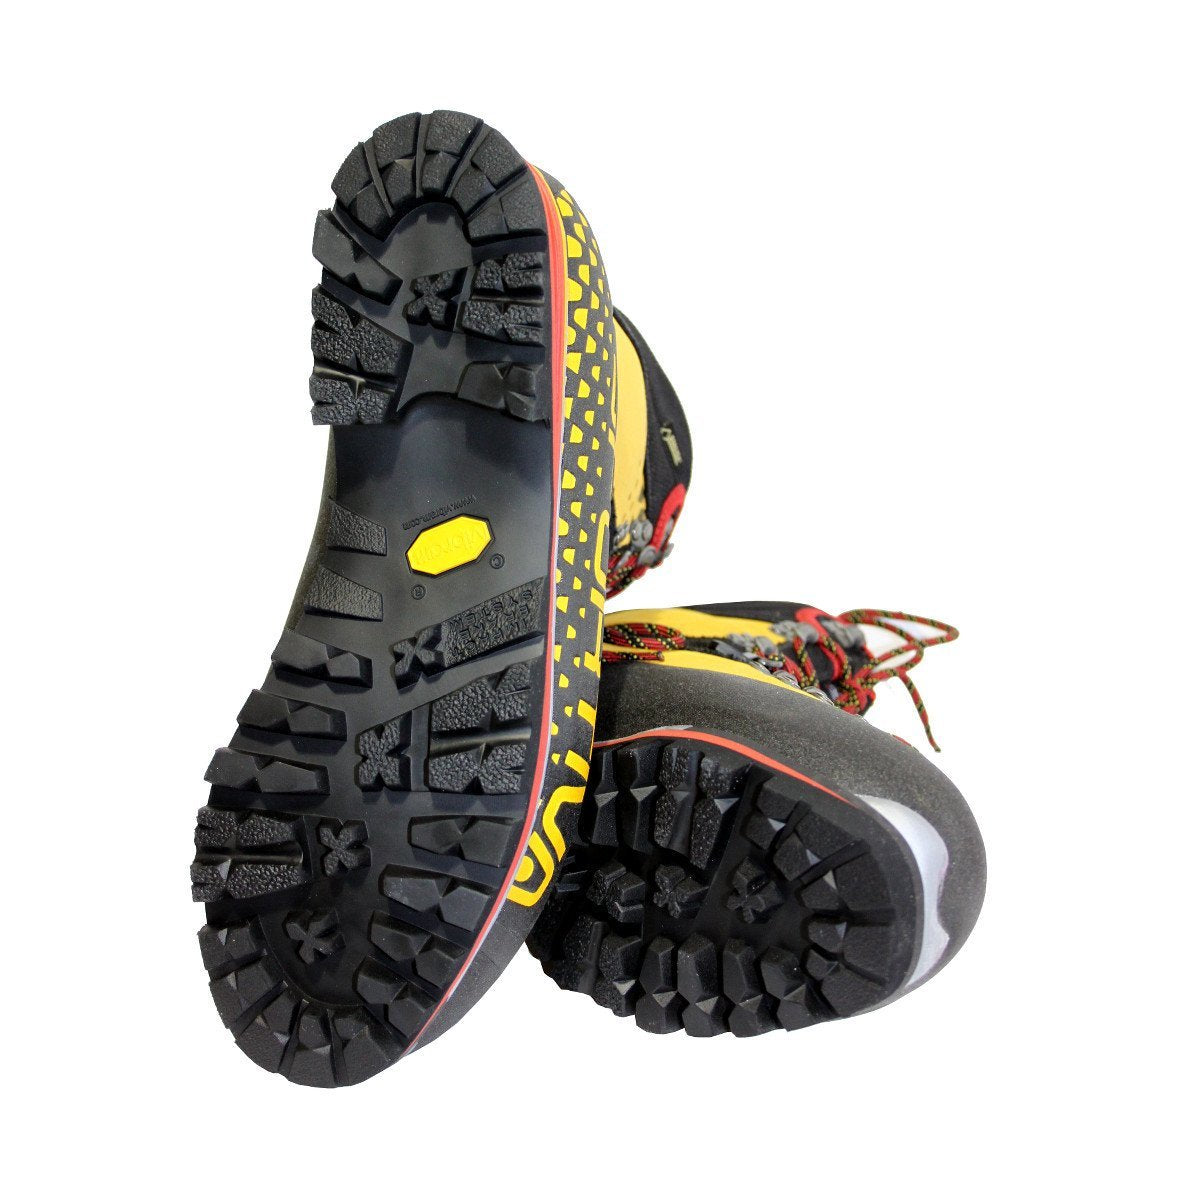 Pair of La Sportiva Nepal Cube GTX Womens Mountaineering Boots, showing the soles